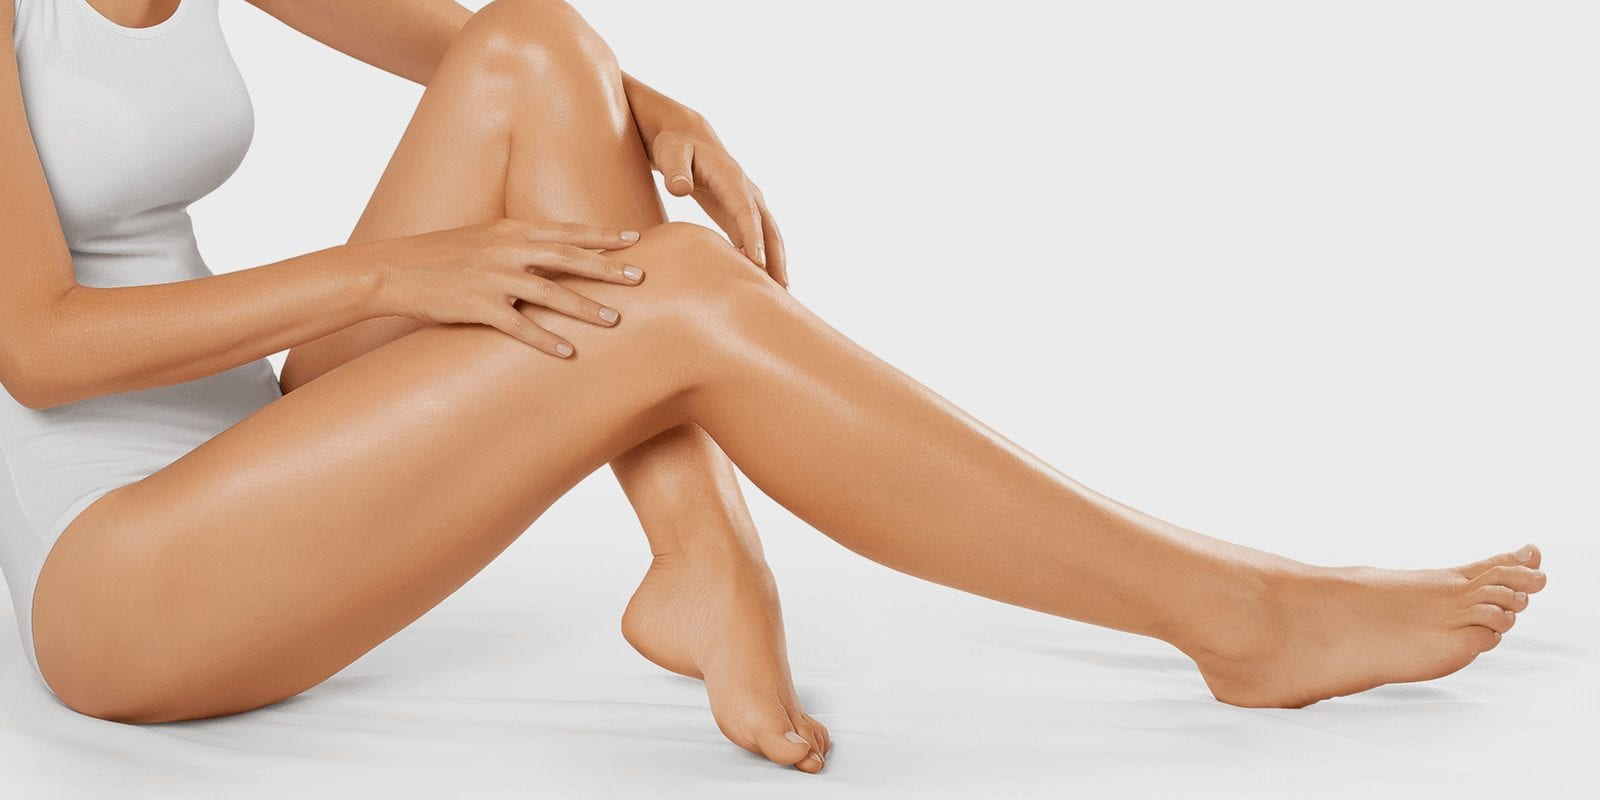 Sclerotherapy, or spider veins, are a common condition treated successfully by Dr. Max Adler at Max Adler Dermatology in Plano TX.